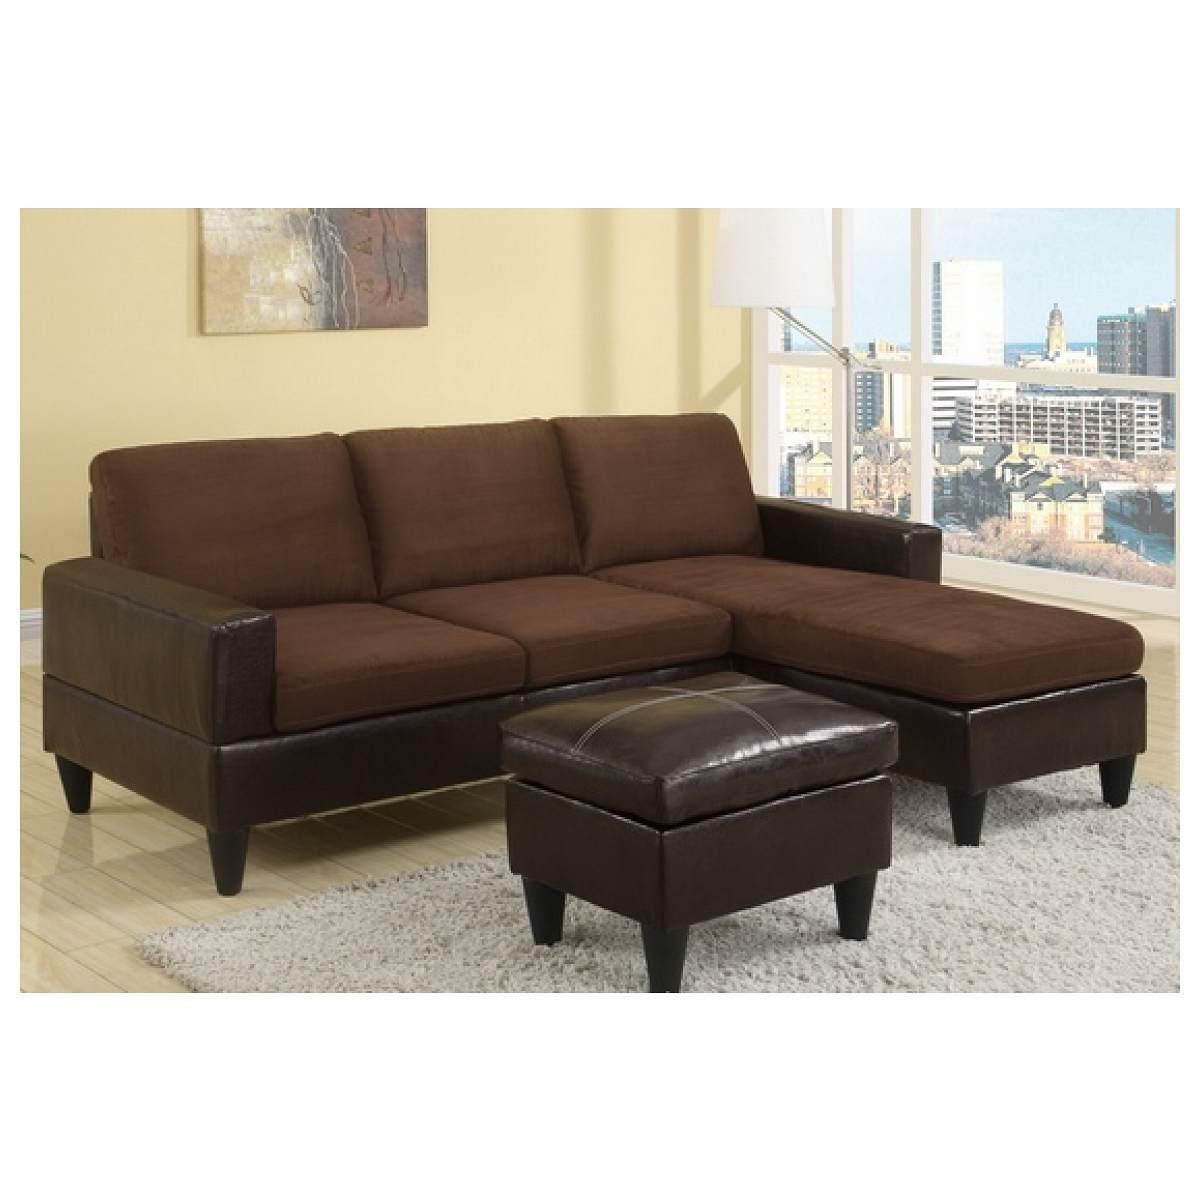 Apartment Size Sectional Sofa With Chaise Inside Condo Size Sofas (Image 3 of 20)